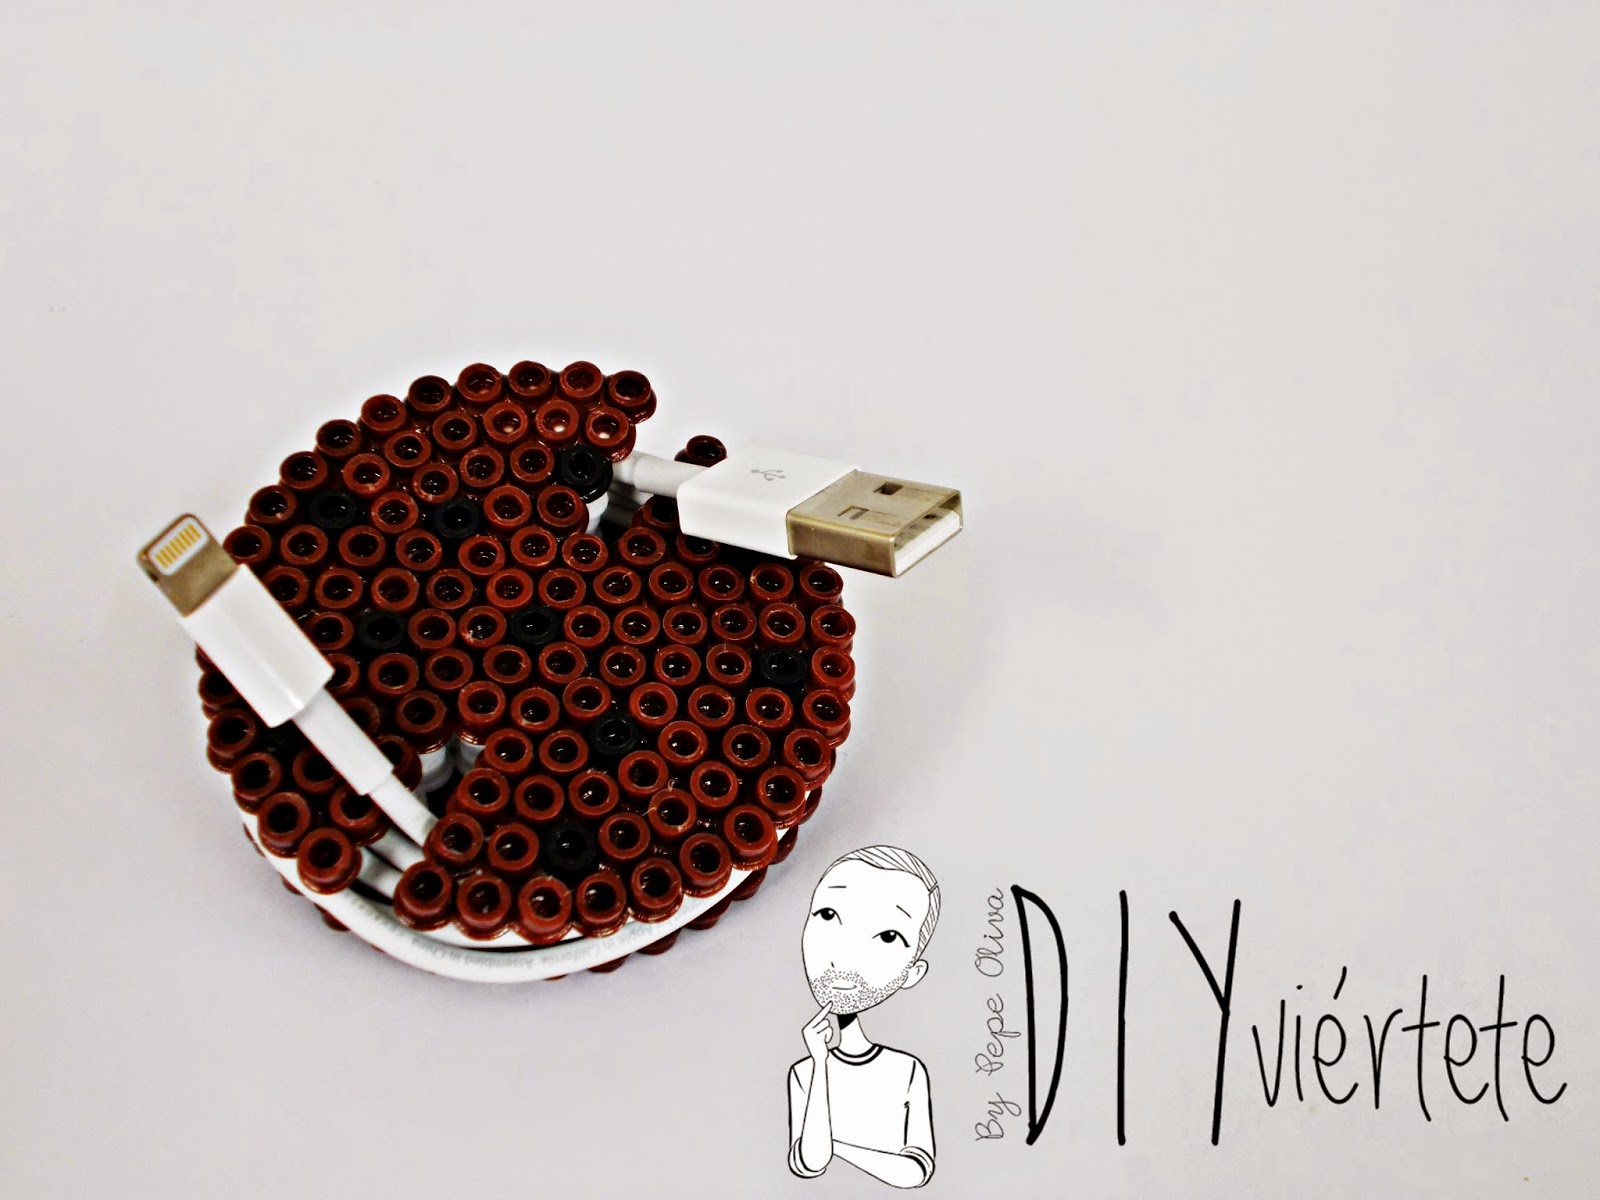 DIY-Hama Beads-ideas-galleta-cookie-guarda auriculares-cables-organizador-8